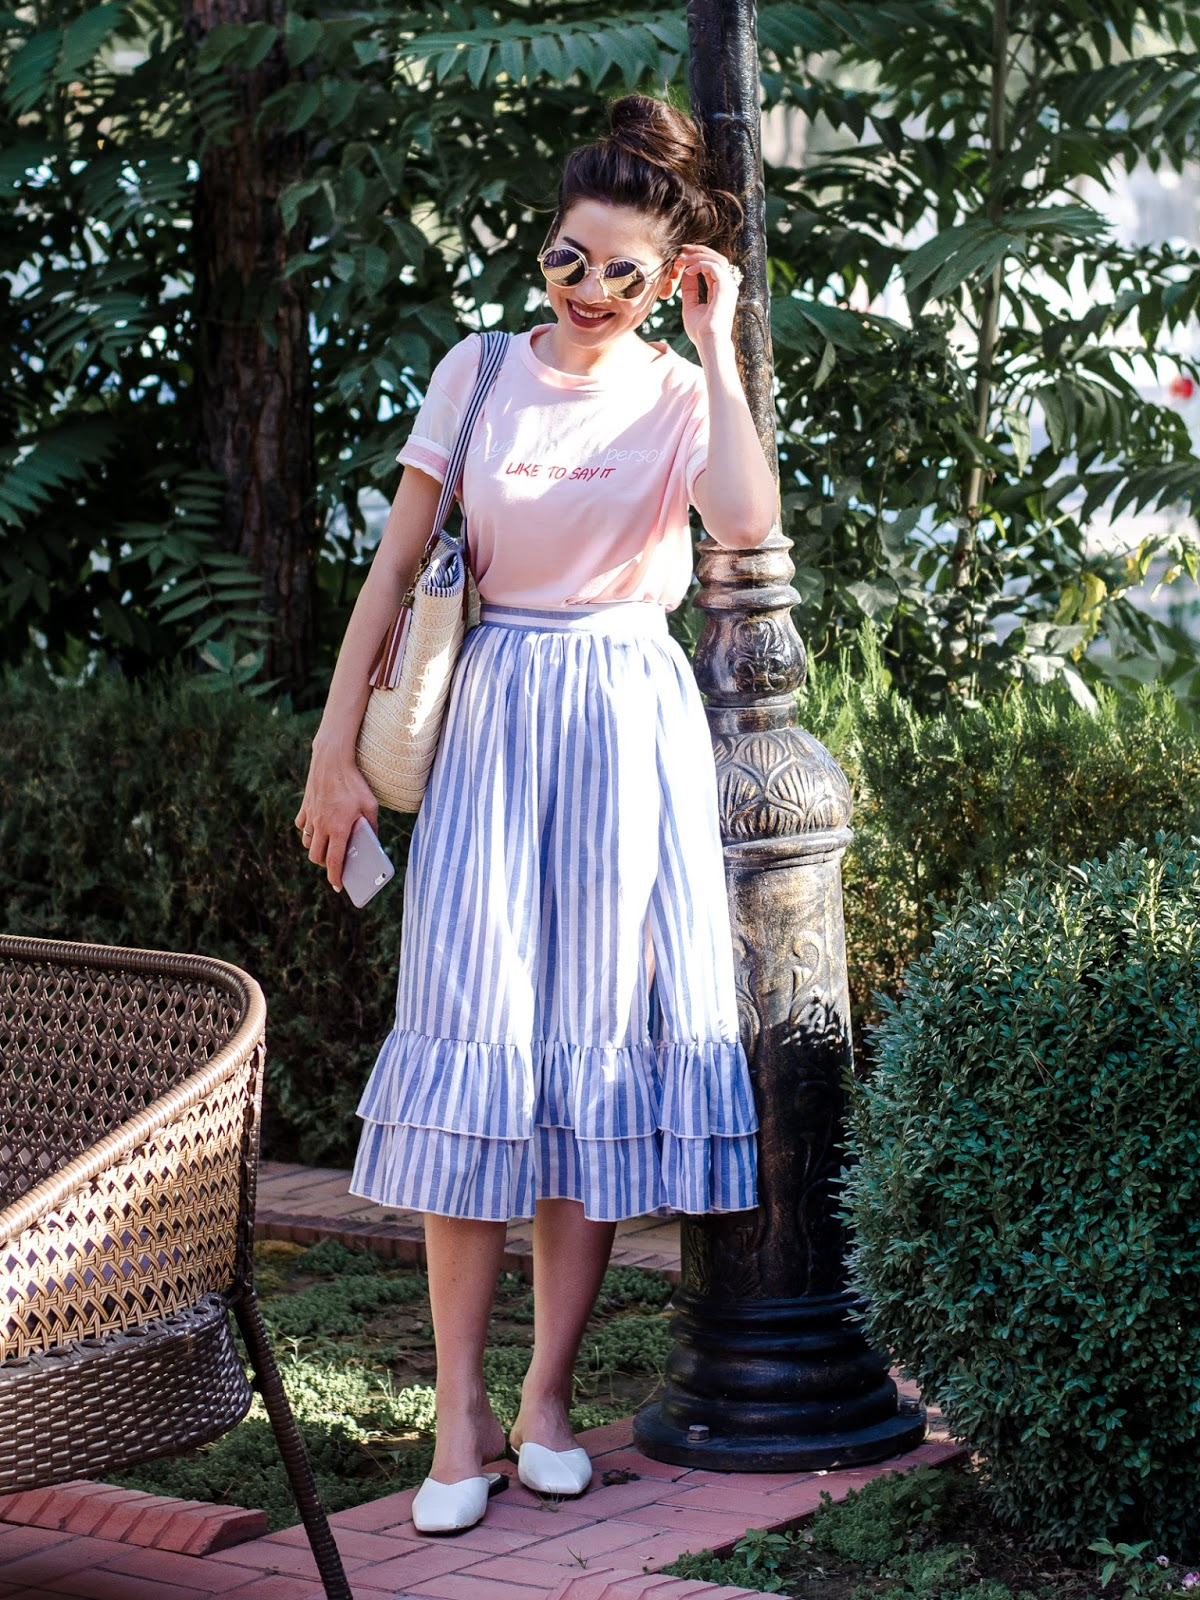 diyorasnotes diyora beta fashion blogger style outfitoftheday lookoftheday striped skirt short pink top straw bag mules casual street style 2017